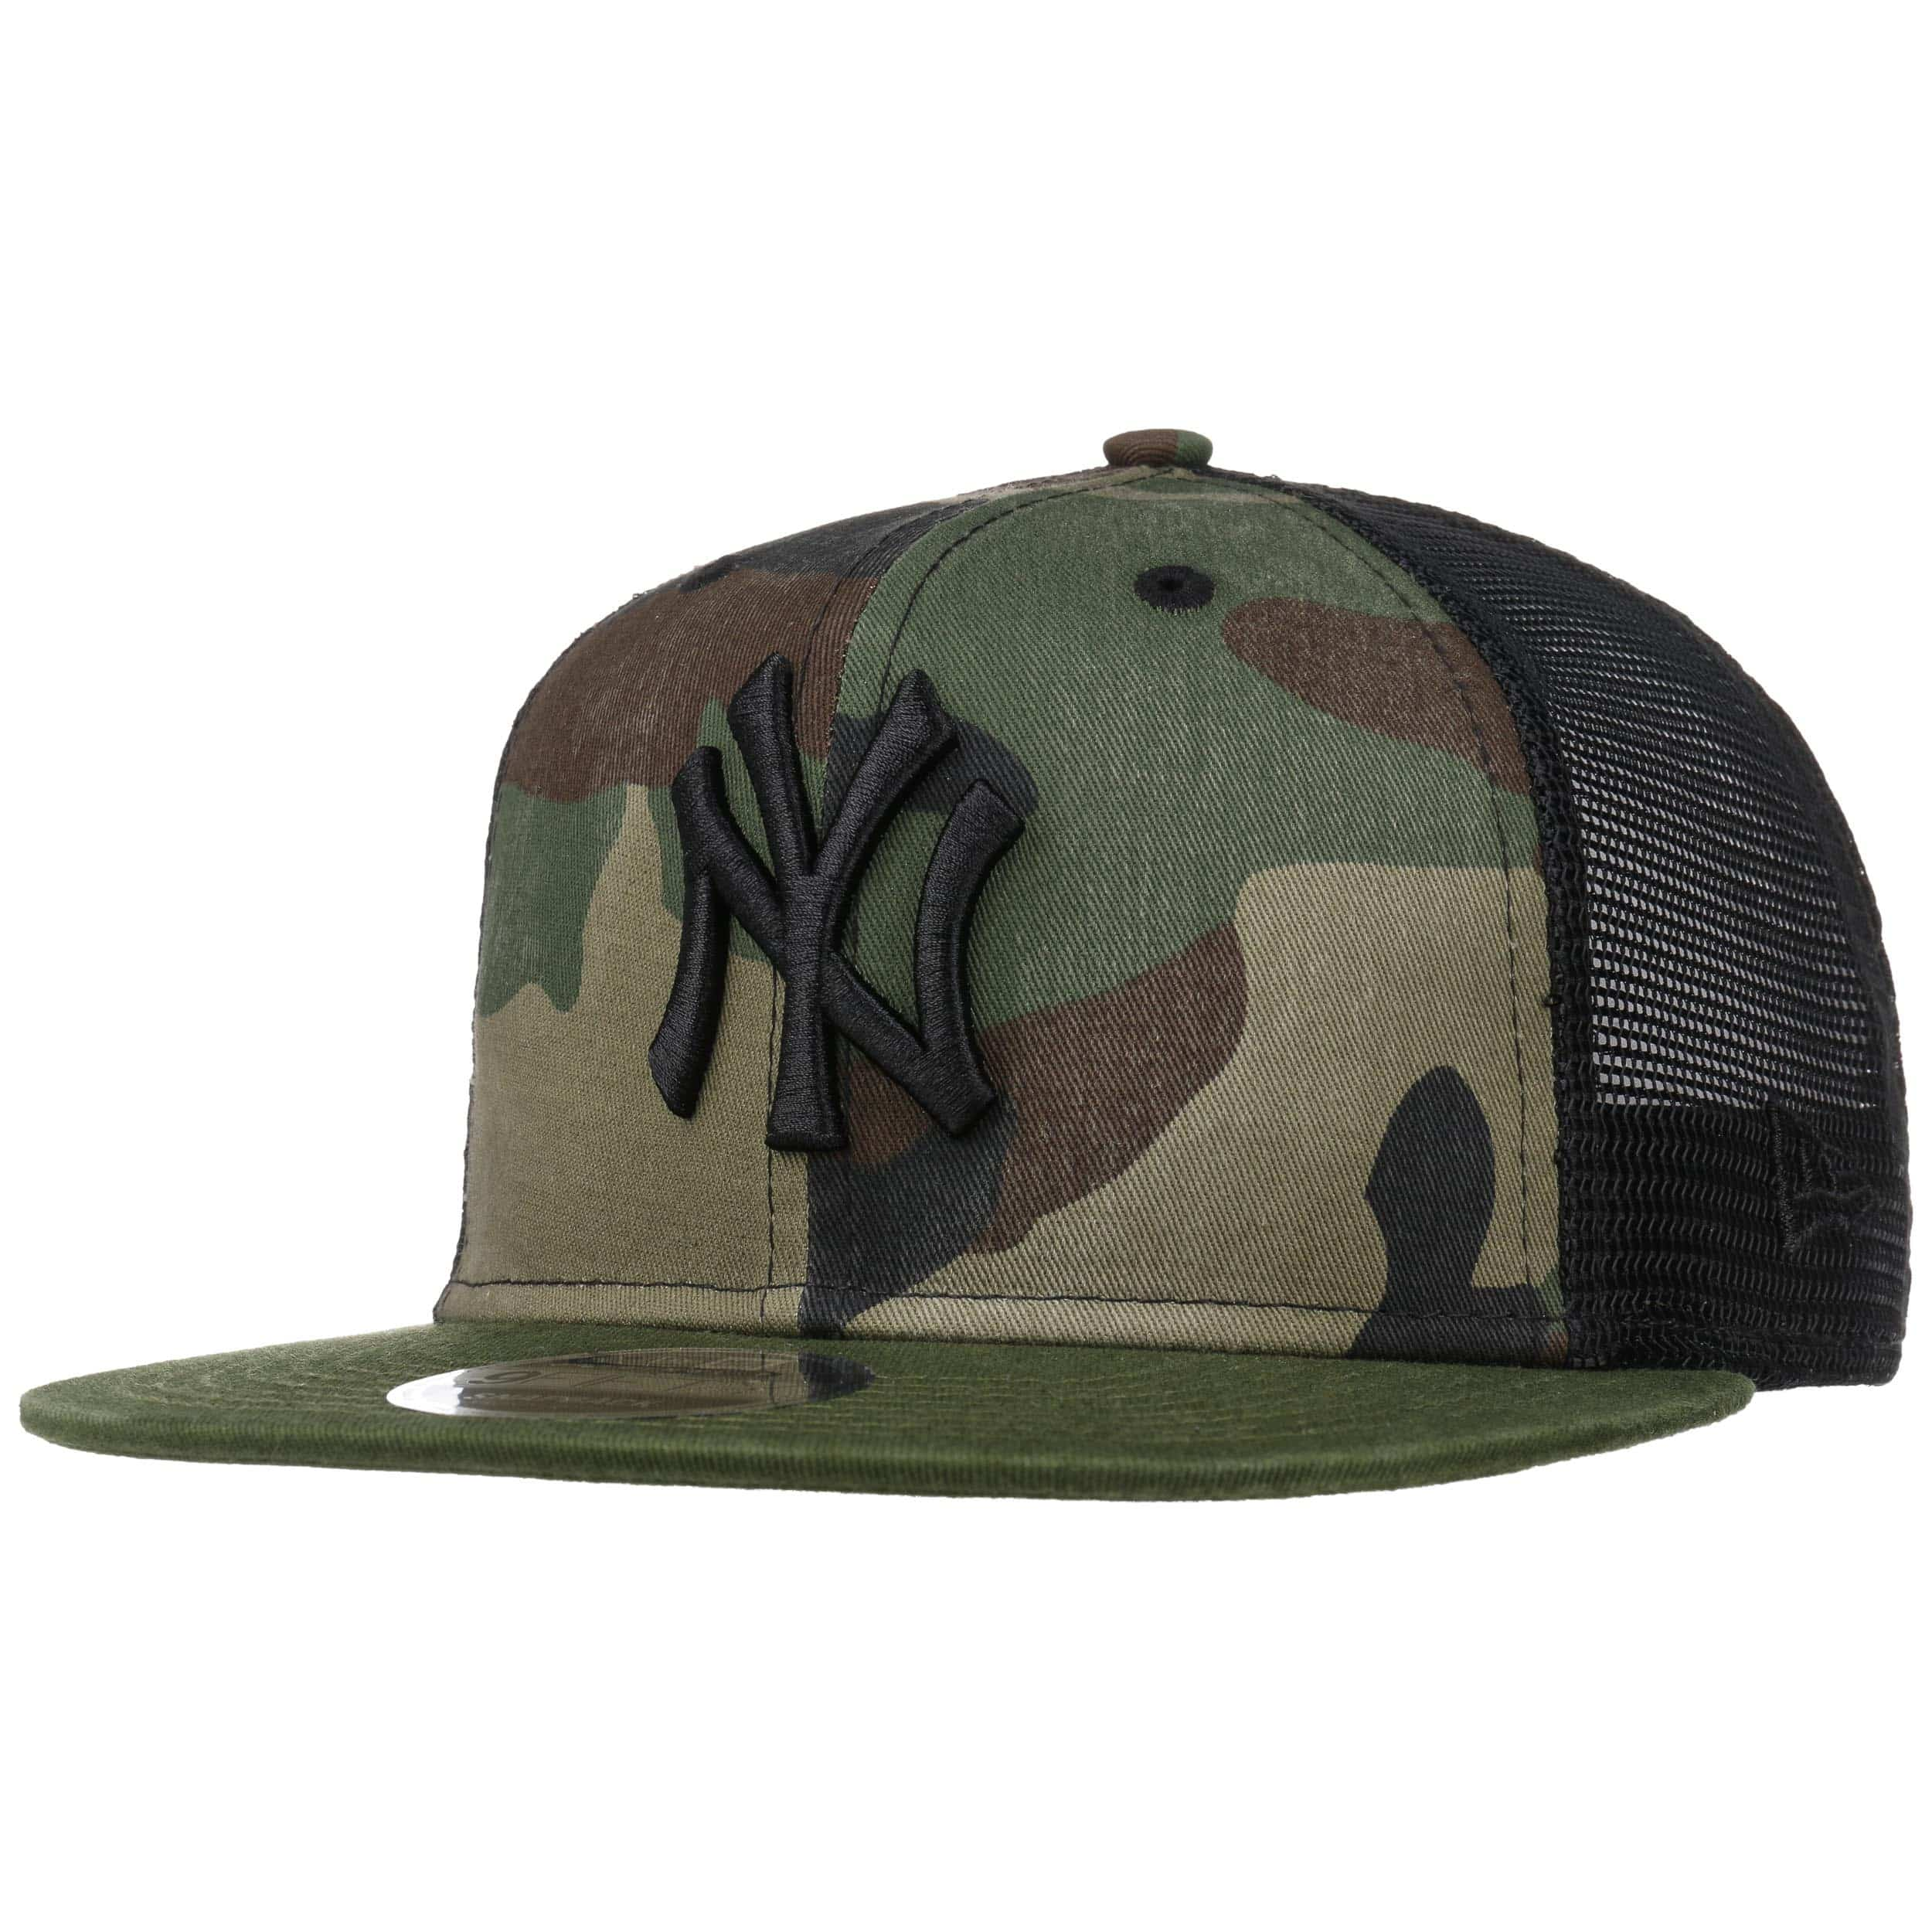 9e60cfeb ... 9Fifty Wash Camo Yankees Cap by New Era - camouflage 7